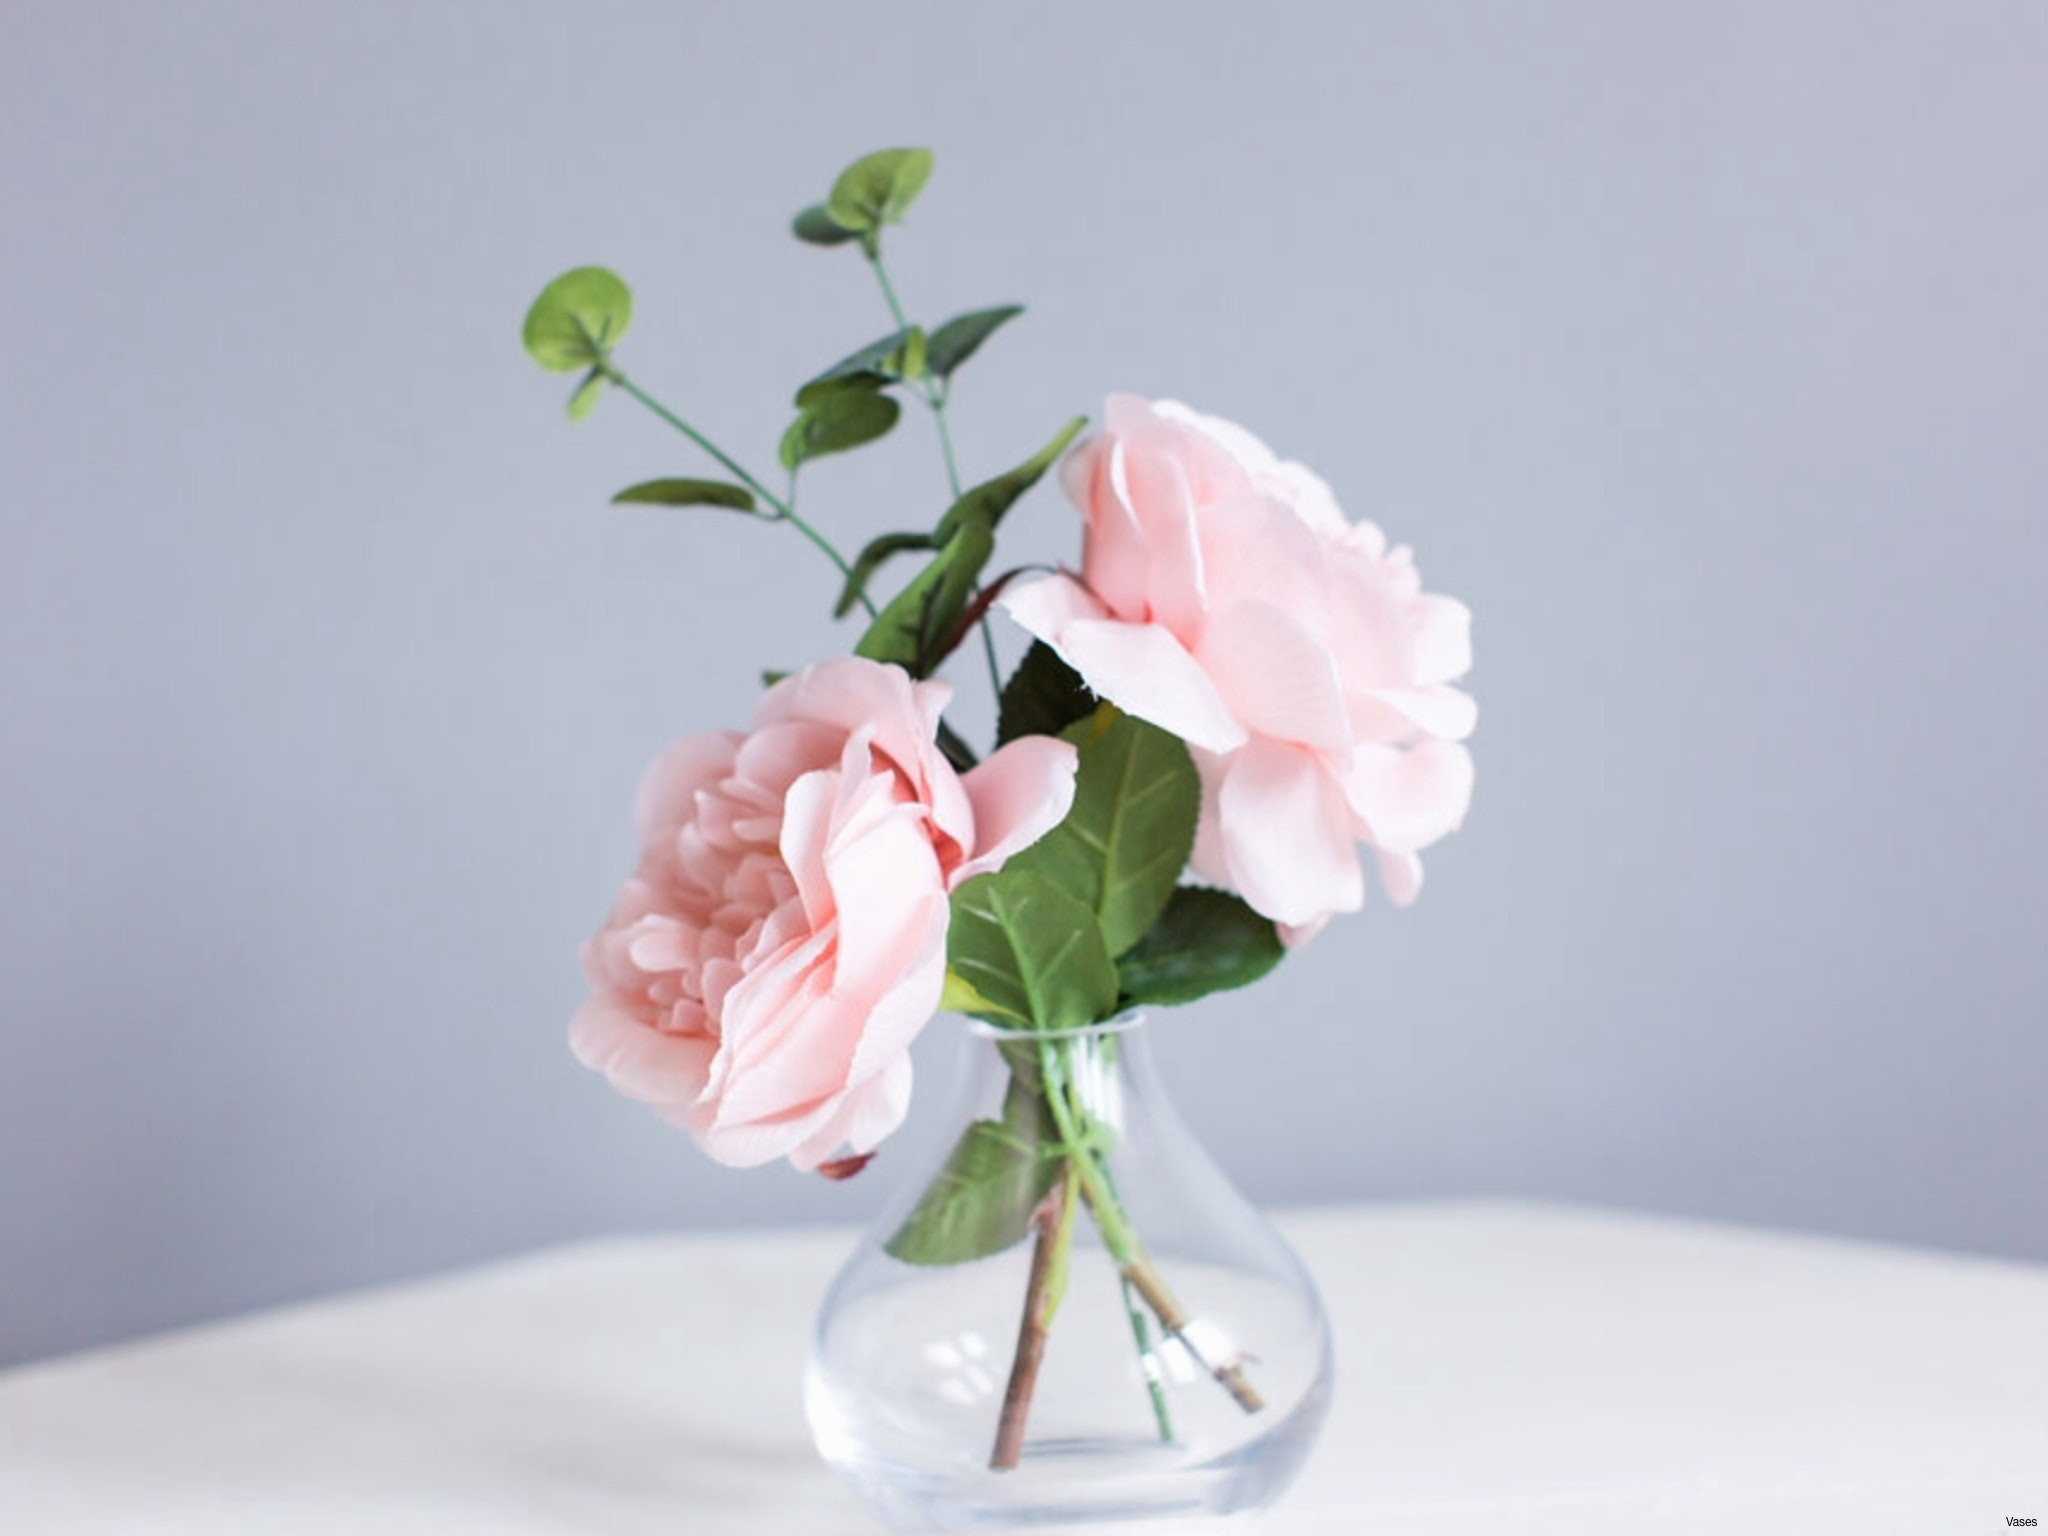 27 Nice Hydrangea Artificial Flowers In Vase 2021 free download hydrangea artificial flowers in vase of 9 awesome flowers by mail cheap graphics best roses flower with gallery of flowers by mail cheap